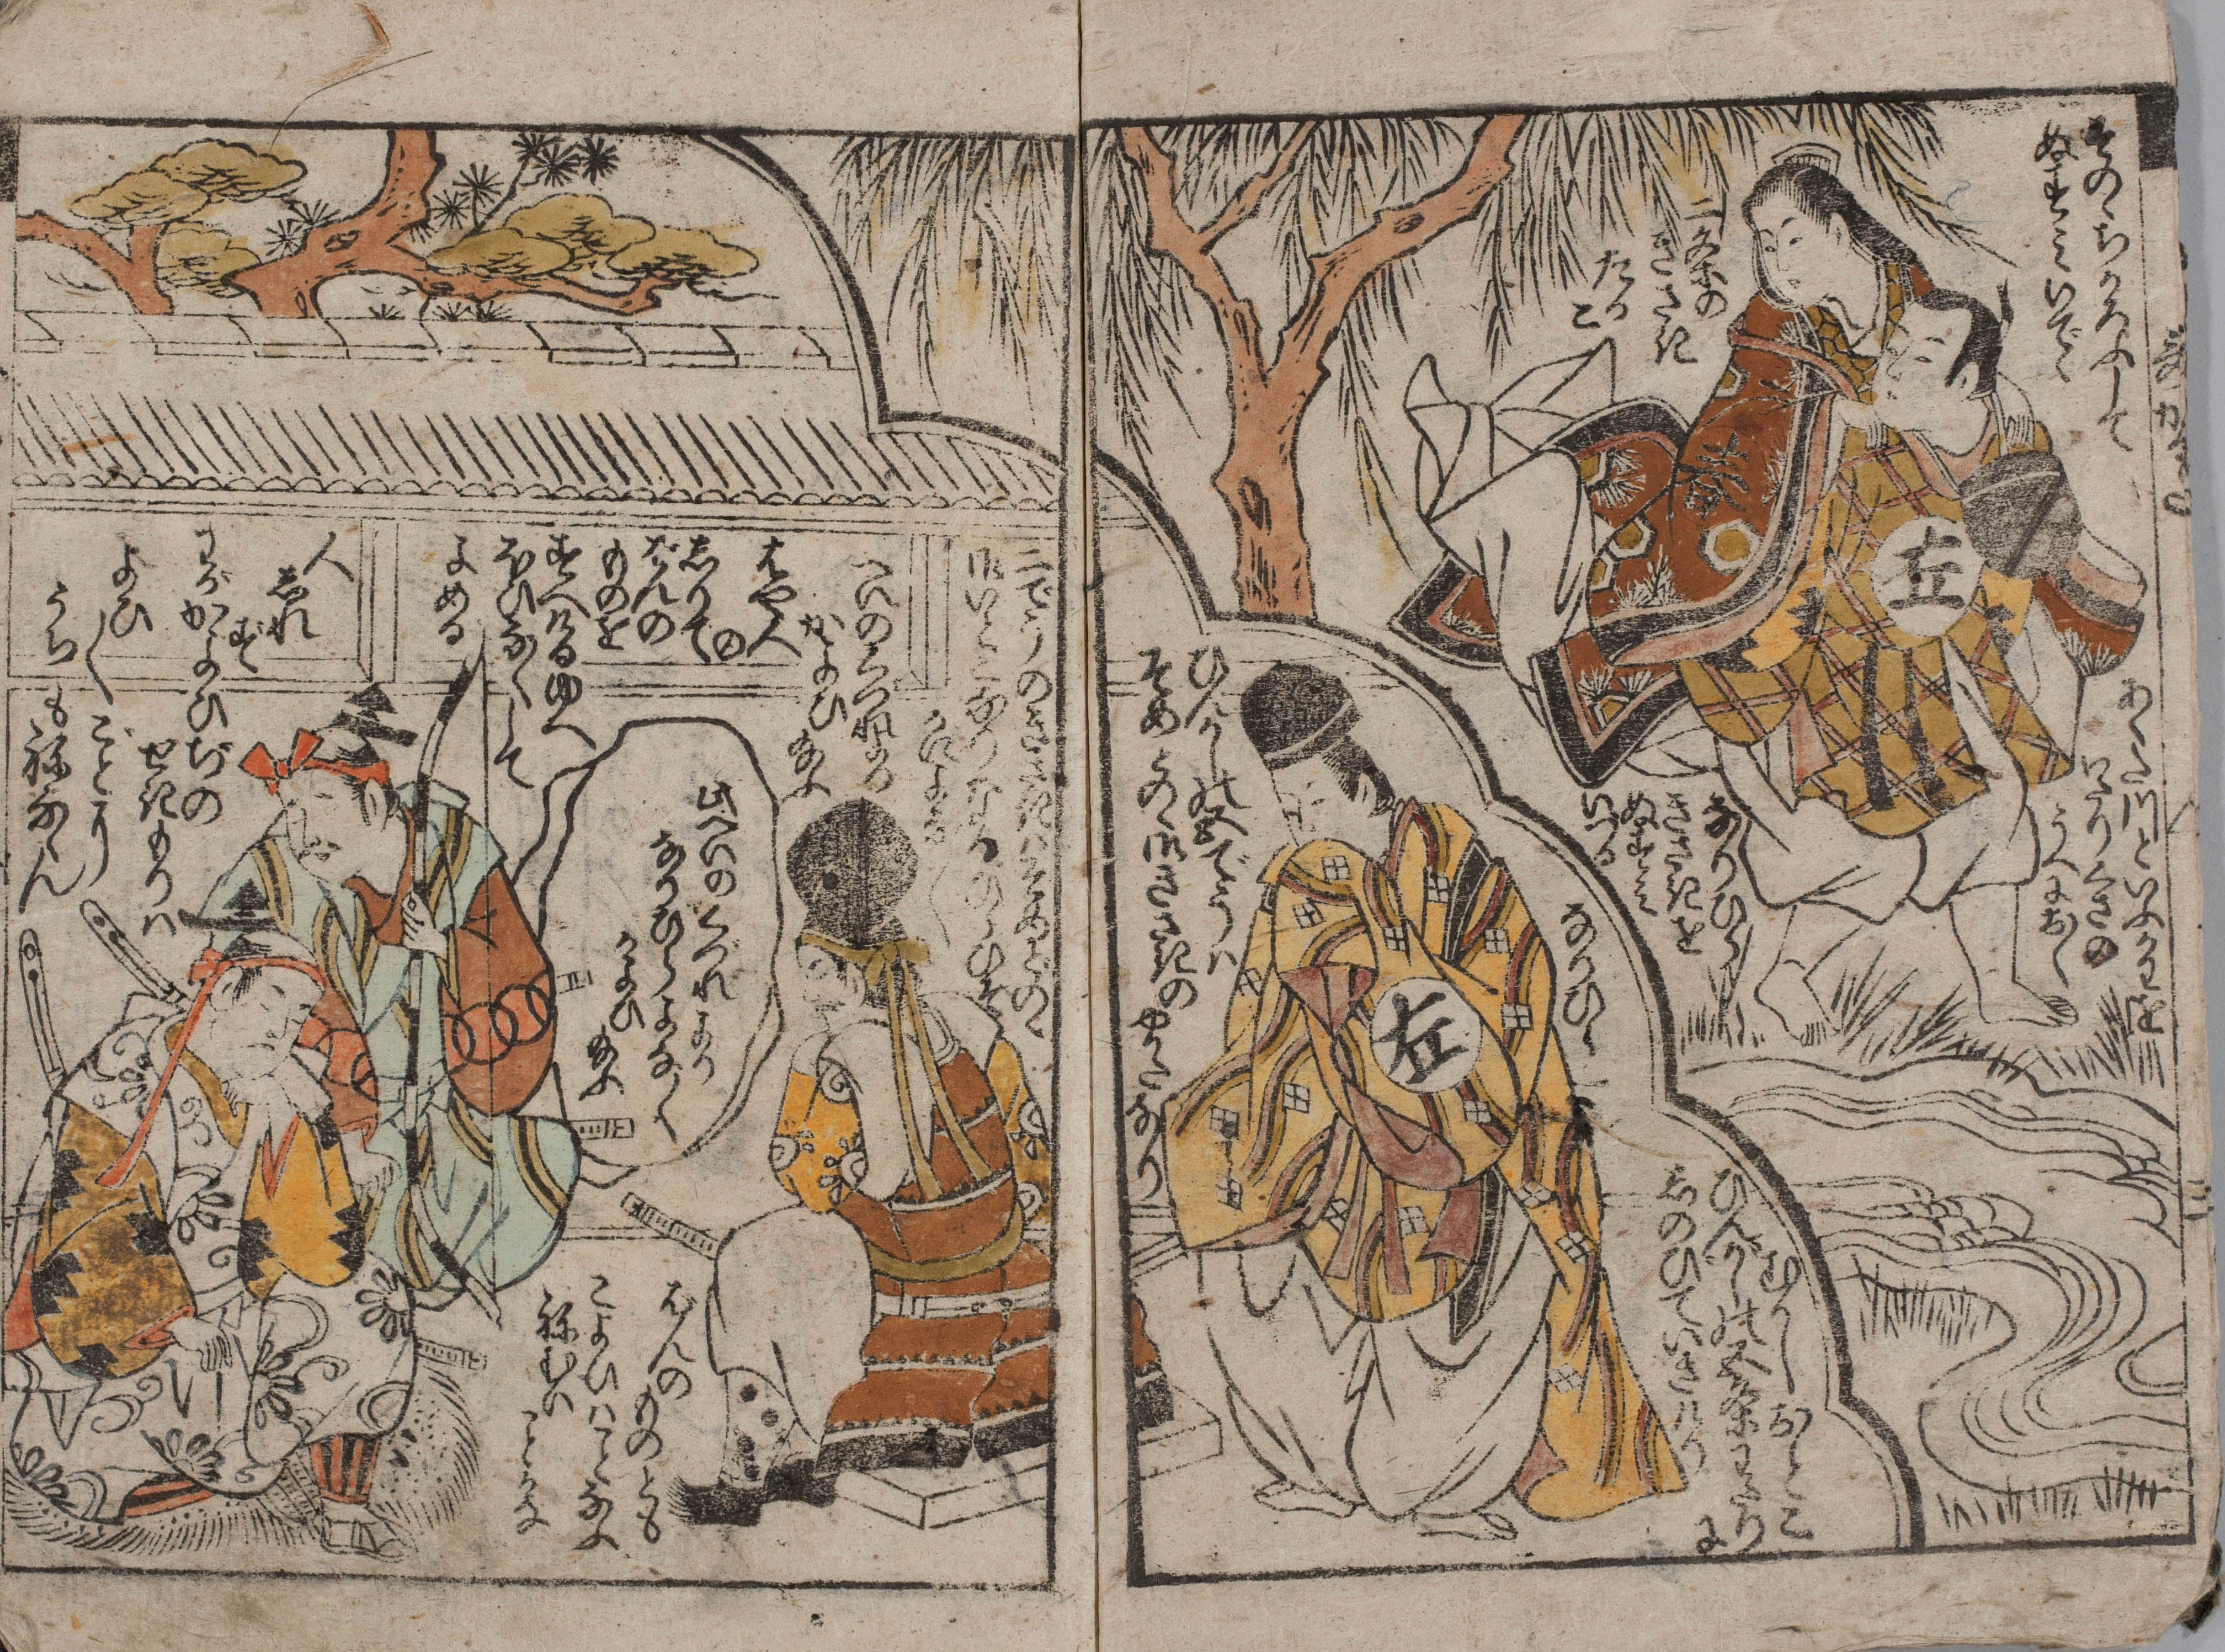 a study of the asian literature Students begin their study of east asia by taking three introductory courses, arranged historically, on the literature, history, religions, visual culture, and other foundational aspects of the region.